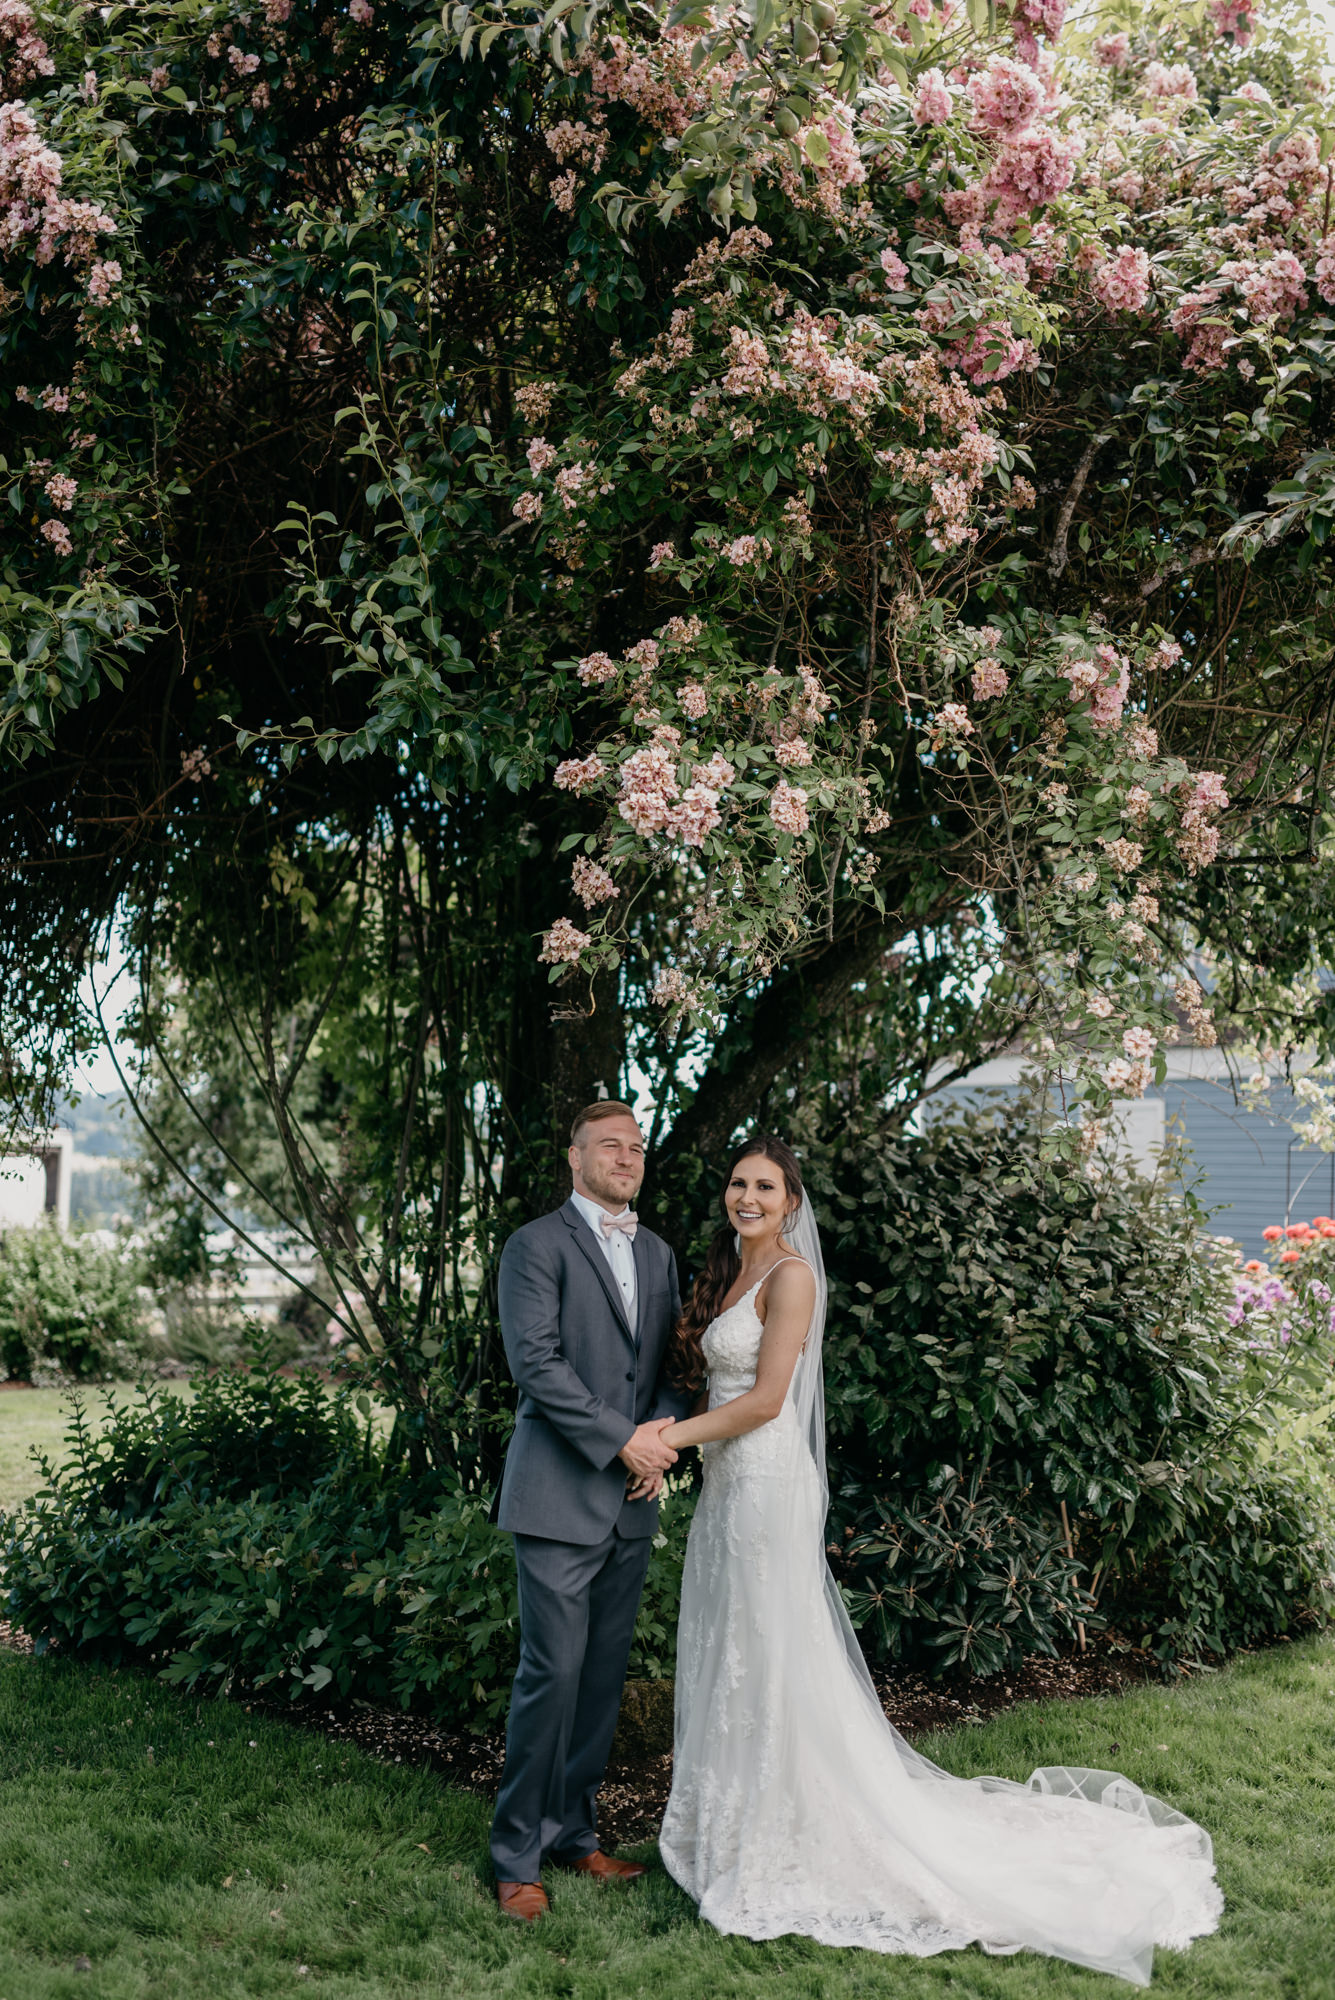 36-lake-oswego-wedding-portland-couple-rose-tree.jpg